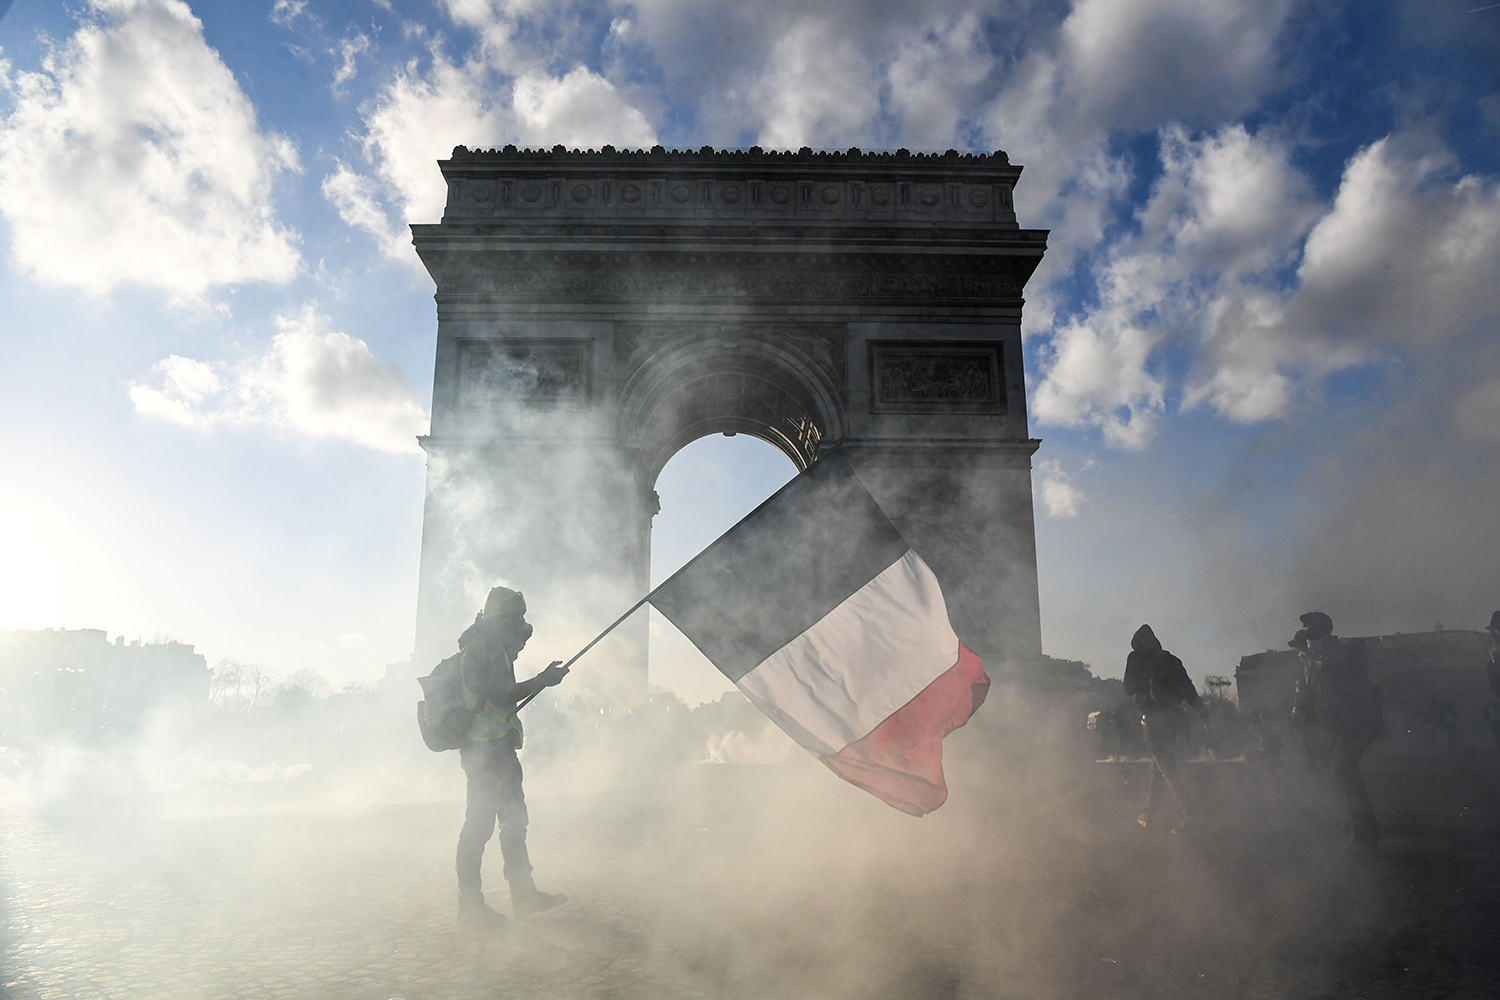 FRANCE | A protester holds a national flag as he walks among tear gas smoke past the Arc de Triomphe during clashes between Yellow Vest protesters and riot police in Paris on March 16. ALAIN JOCARD/AFP via Getty Images